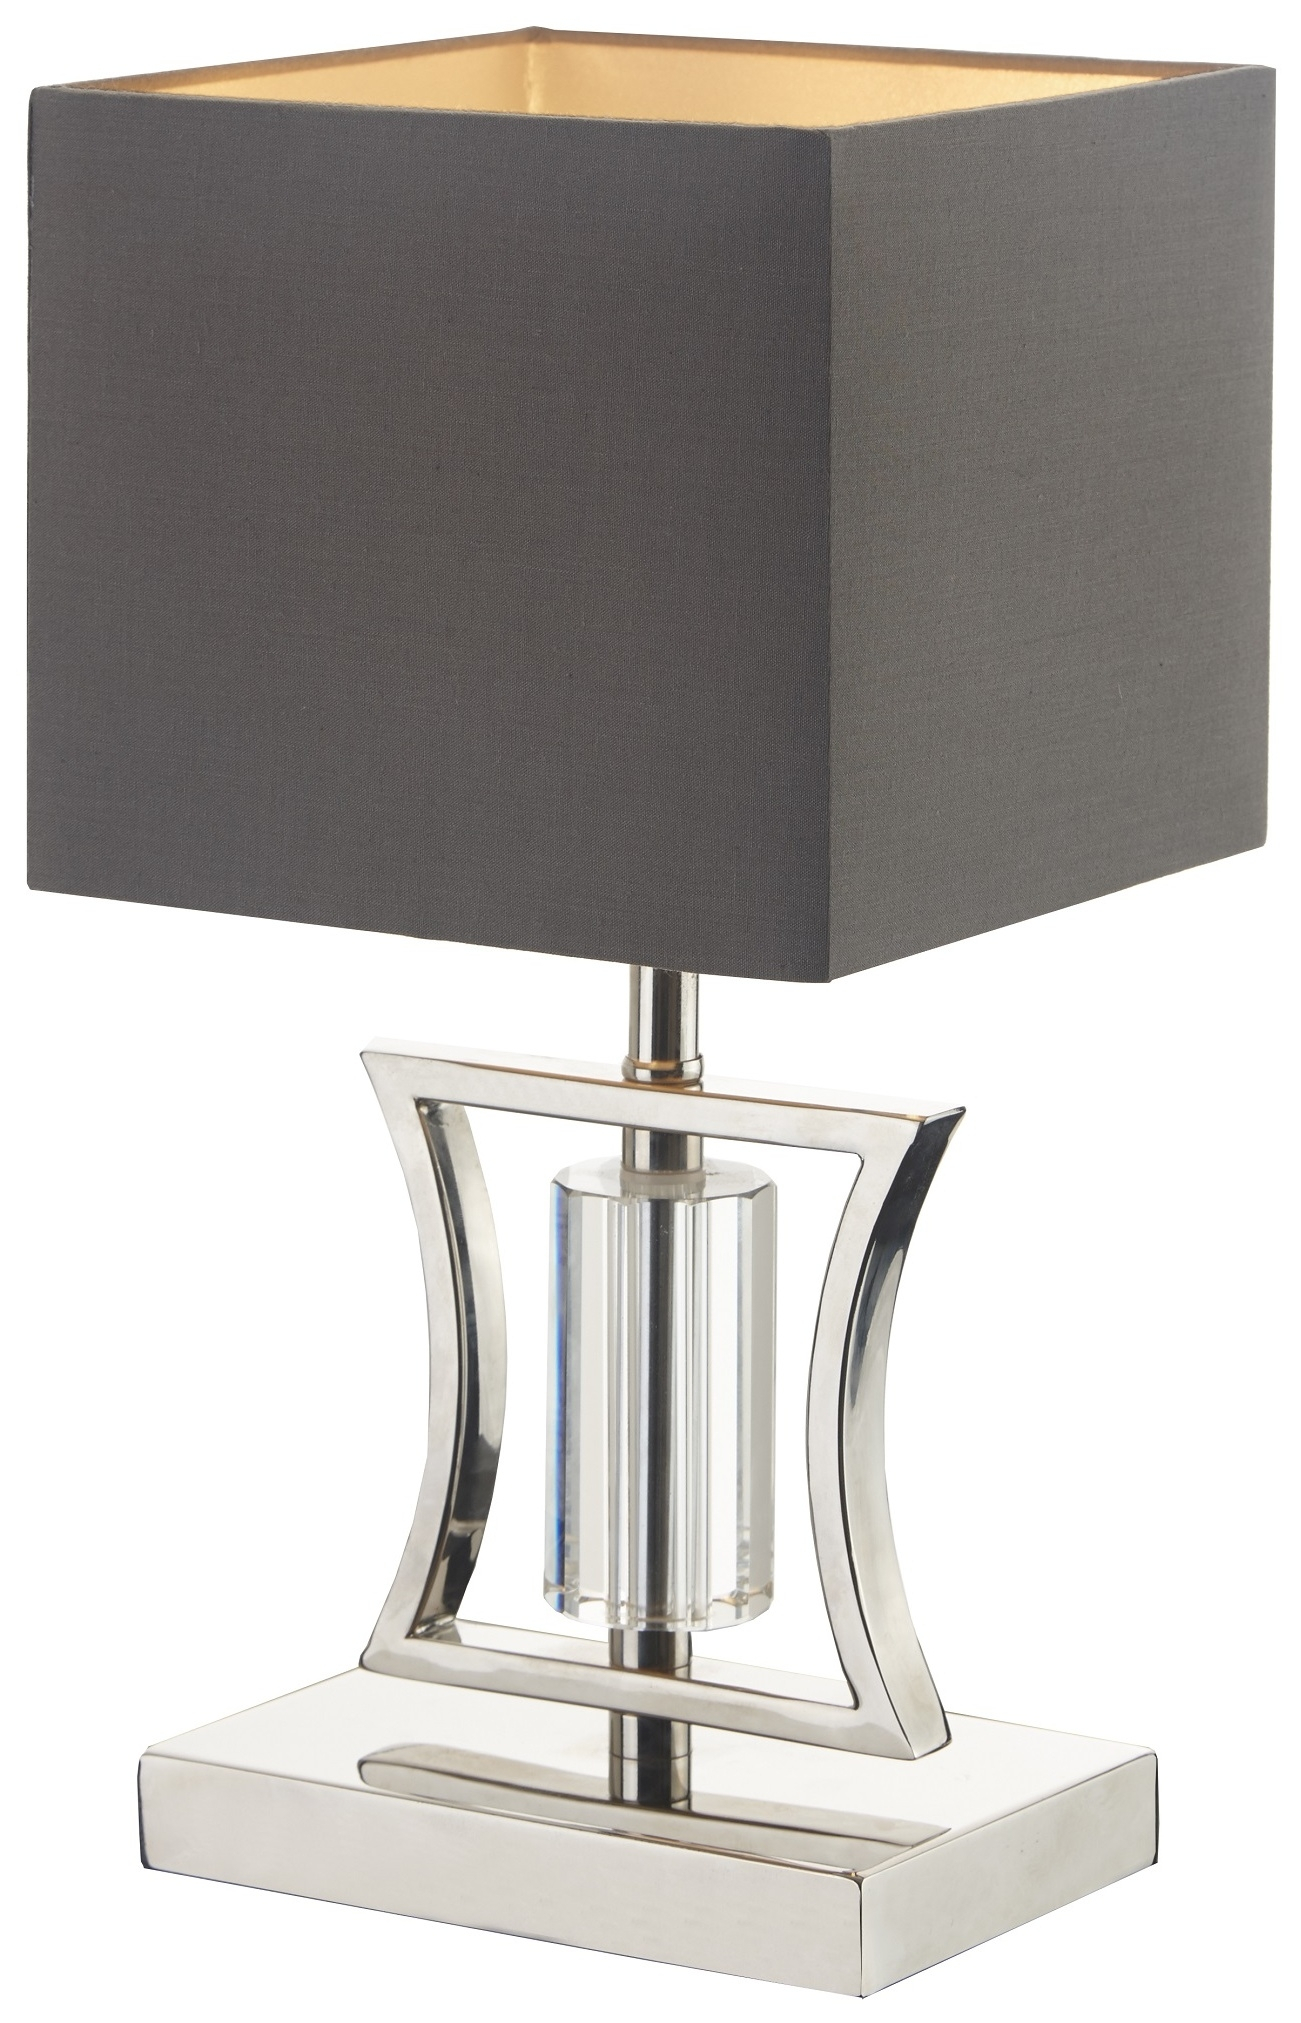 Rv Astley Aberto Table Lamp Satin Nickel And Crystal throughout size 1301 X 2023